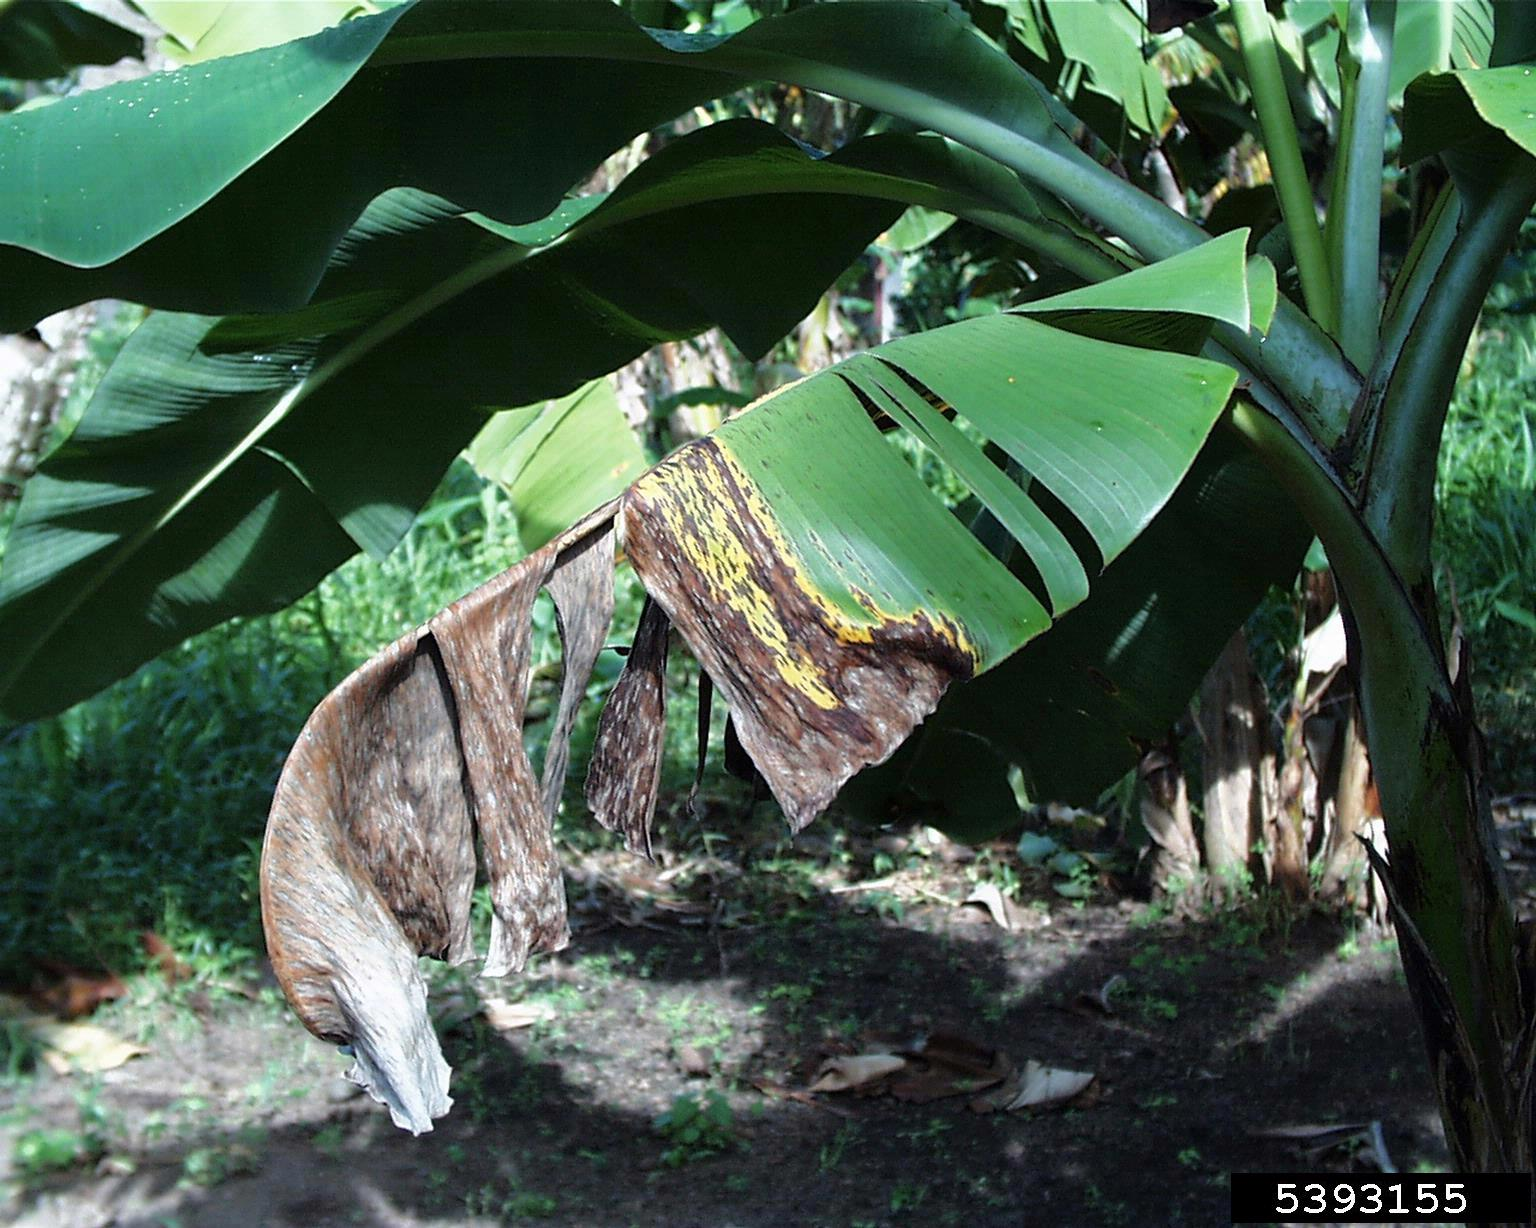 Banana Tree Problems What To Do About Banana Tree Insects And Diseases